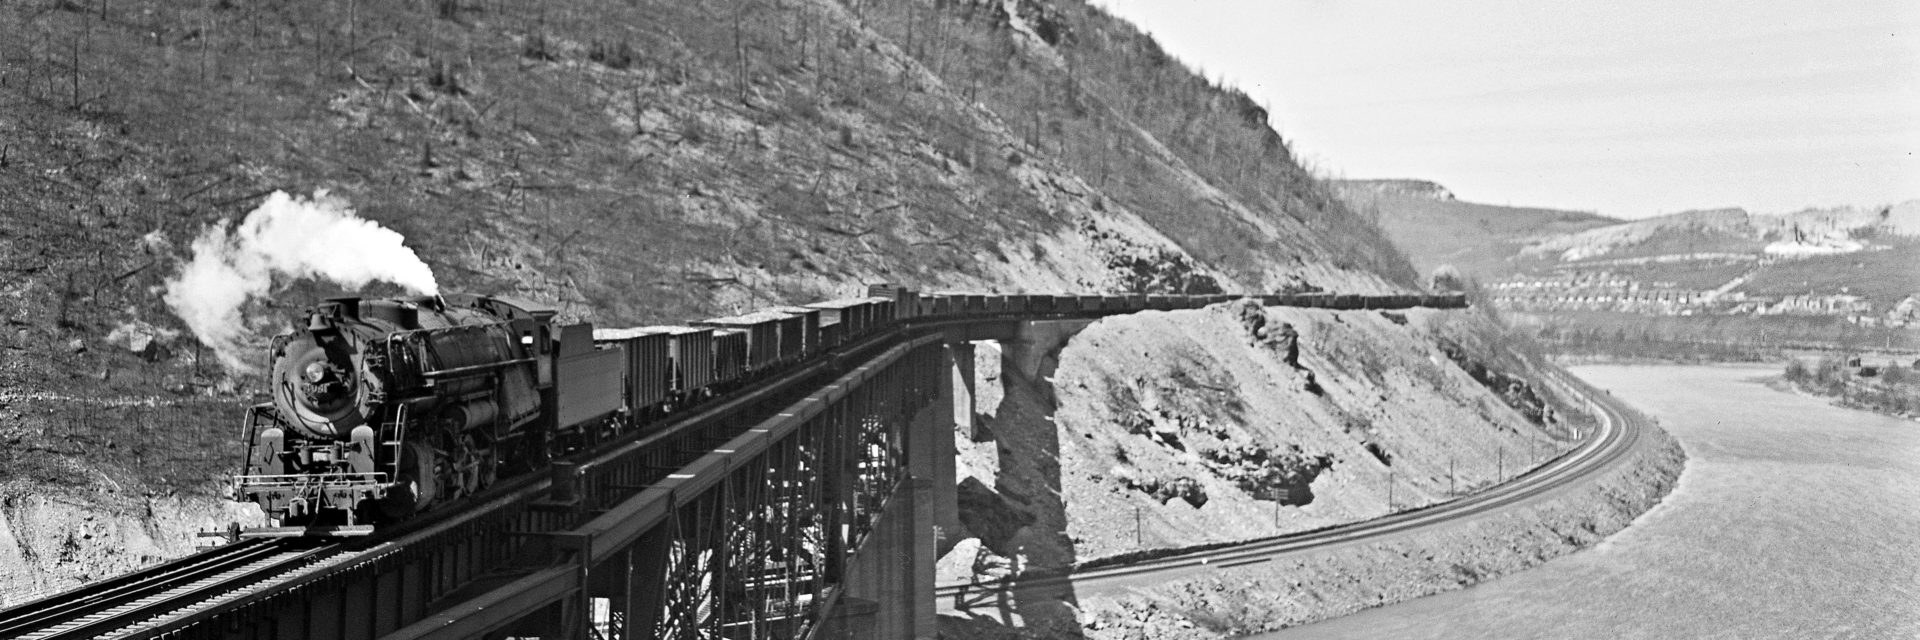 Center for Railroad Photography & Art – Publisher of